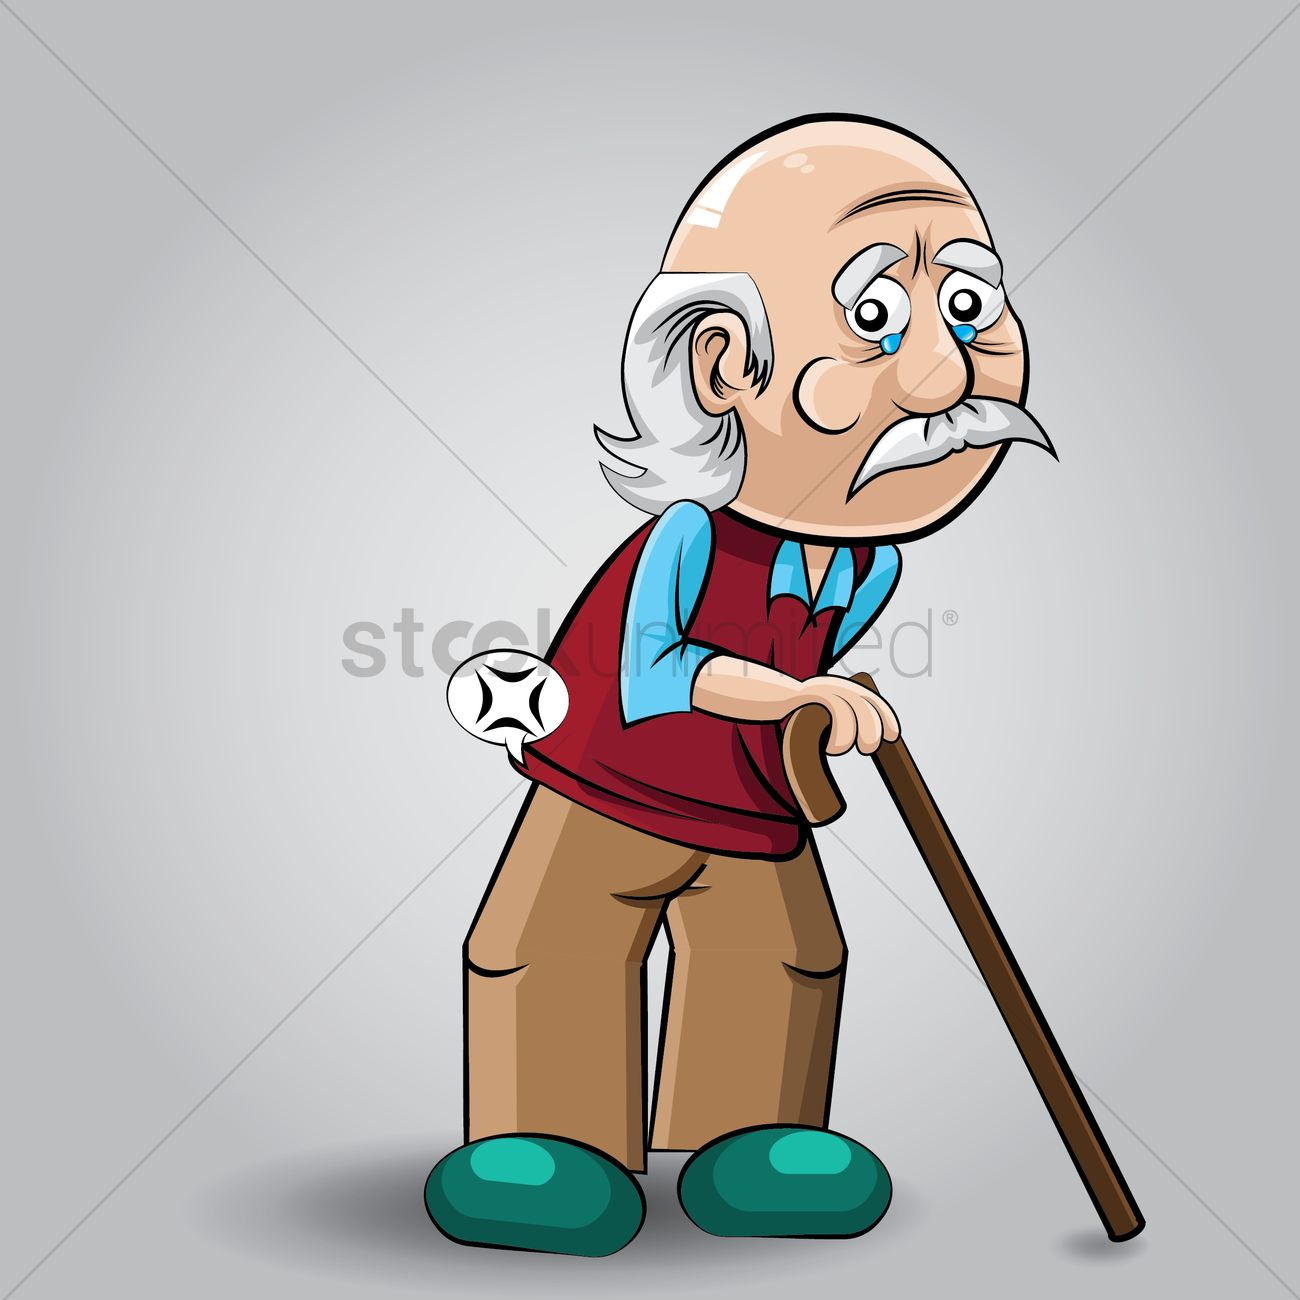 Cartoon Characters Old Man : Old man with stick vector image stockunlimited